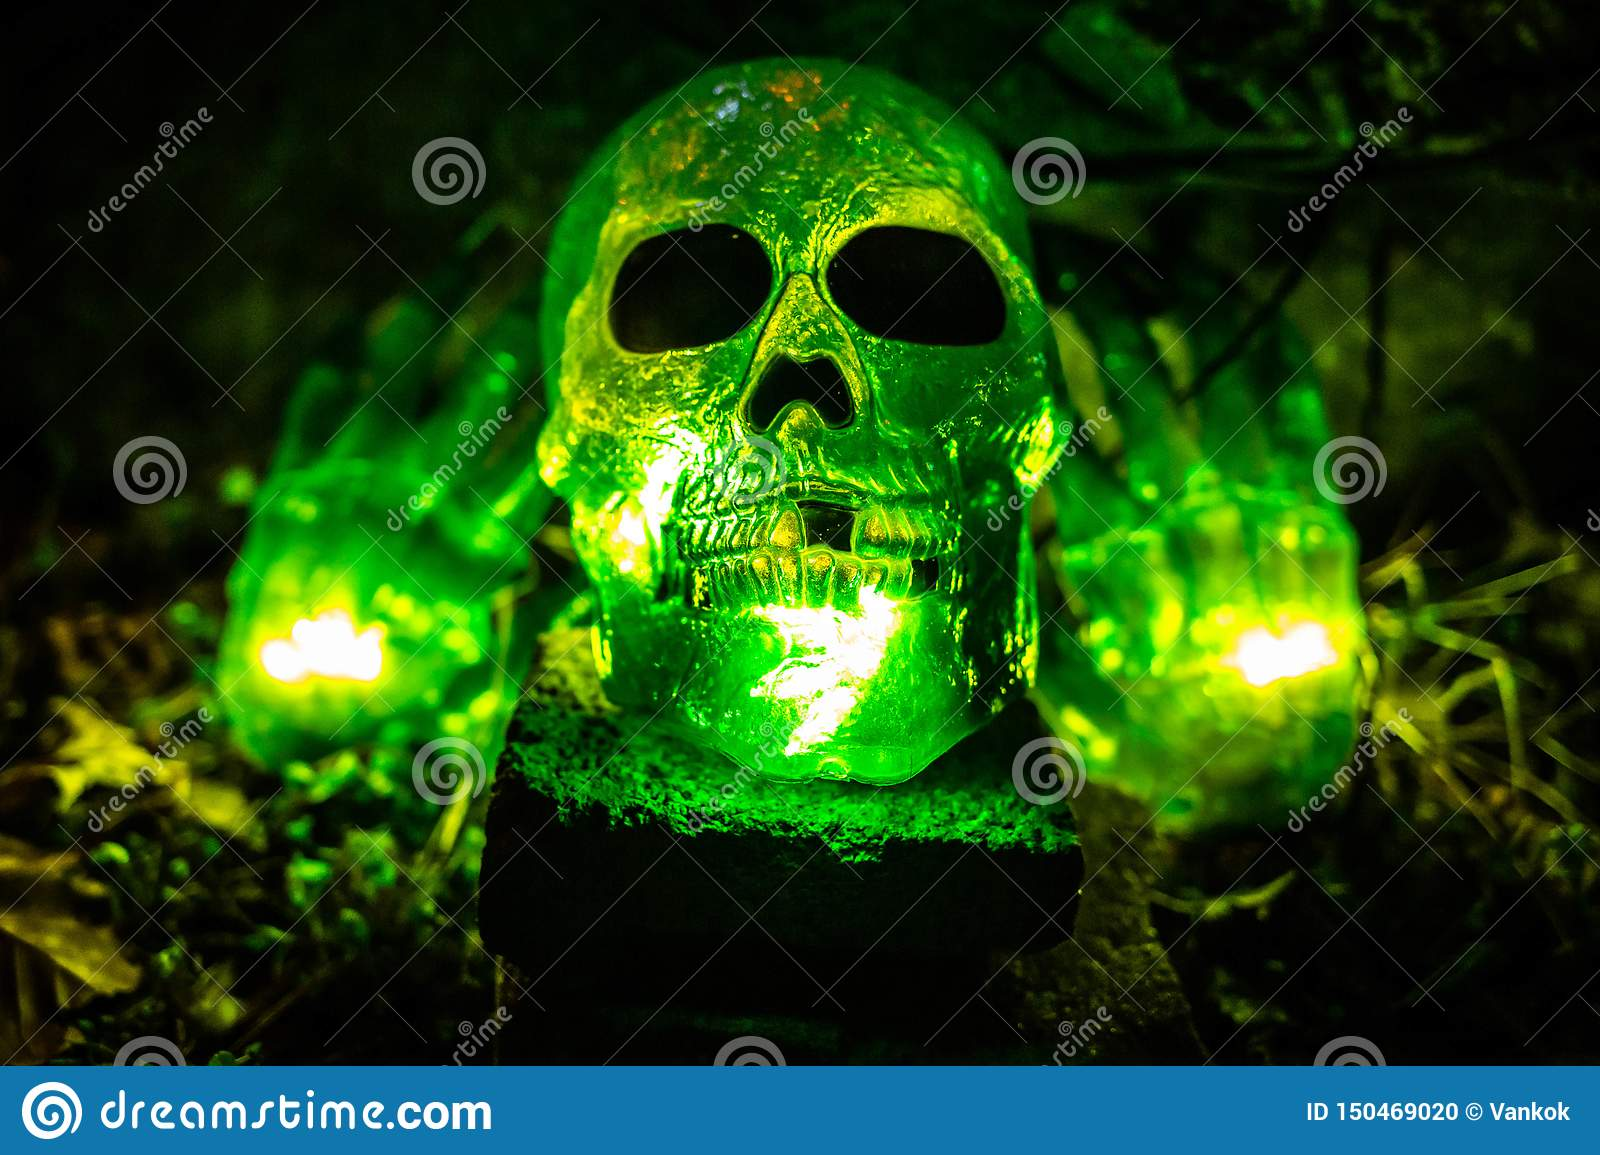 Scary Halloween Decorations Outdoors At Night Close Up Stock